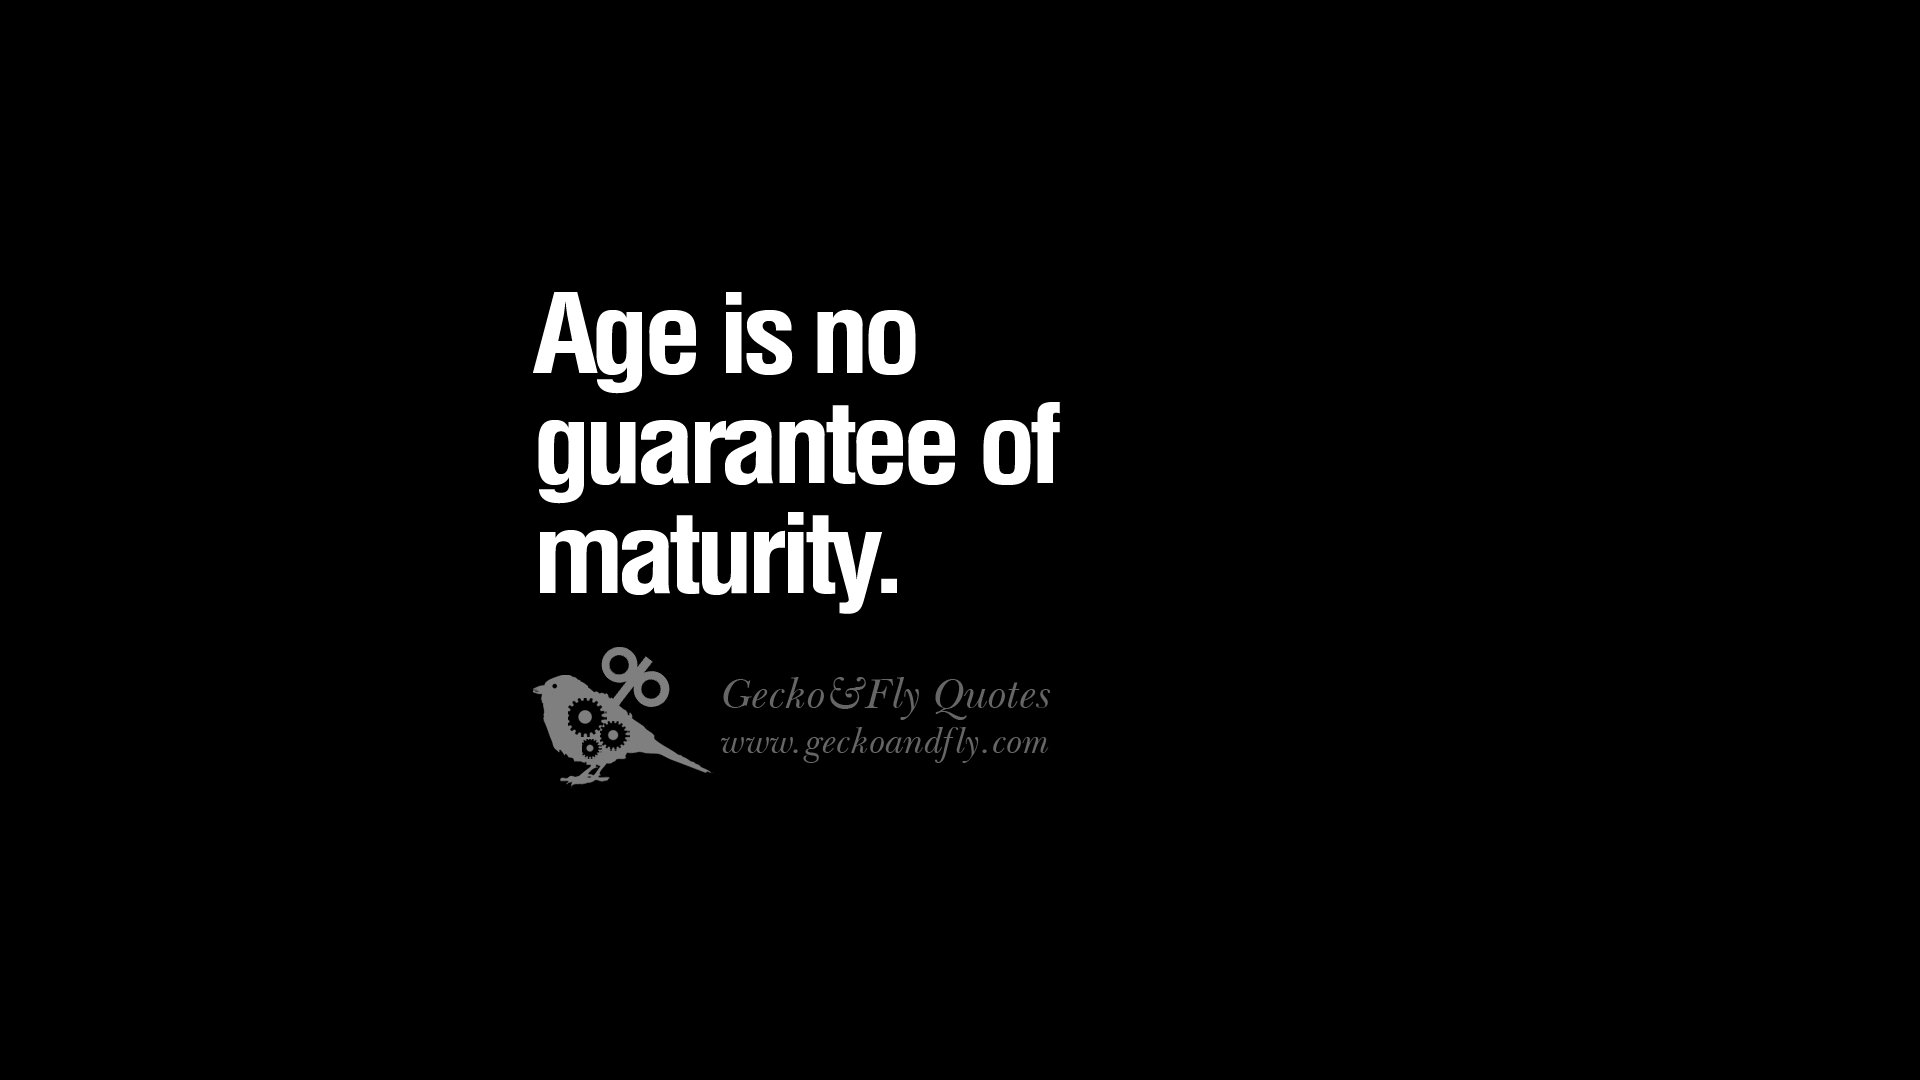 Age And Maturity Quotes Quotesgram: Wise Quotes About Age. QuotesGram